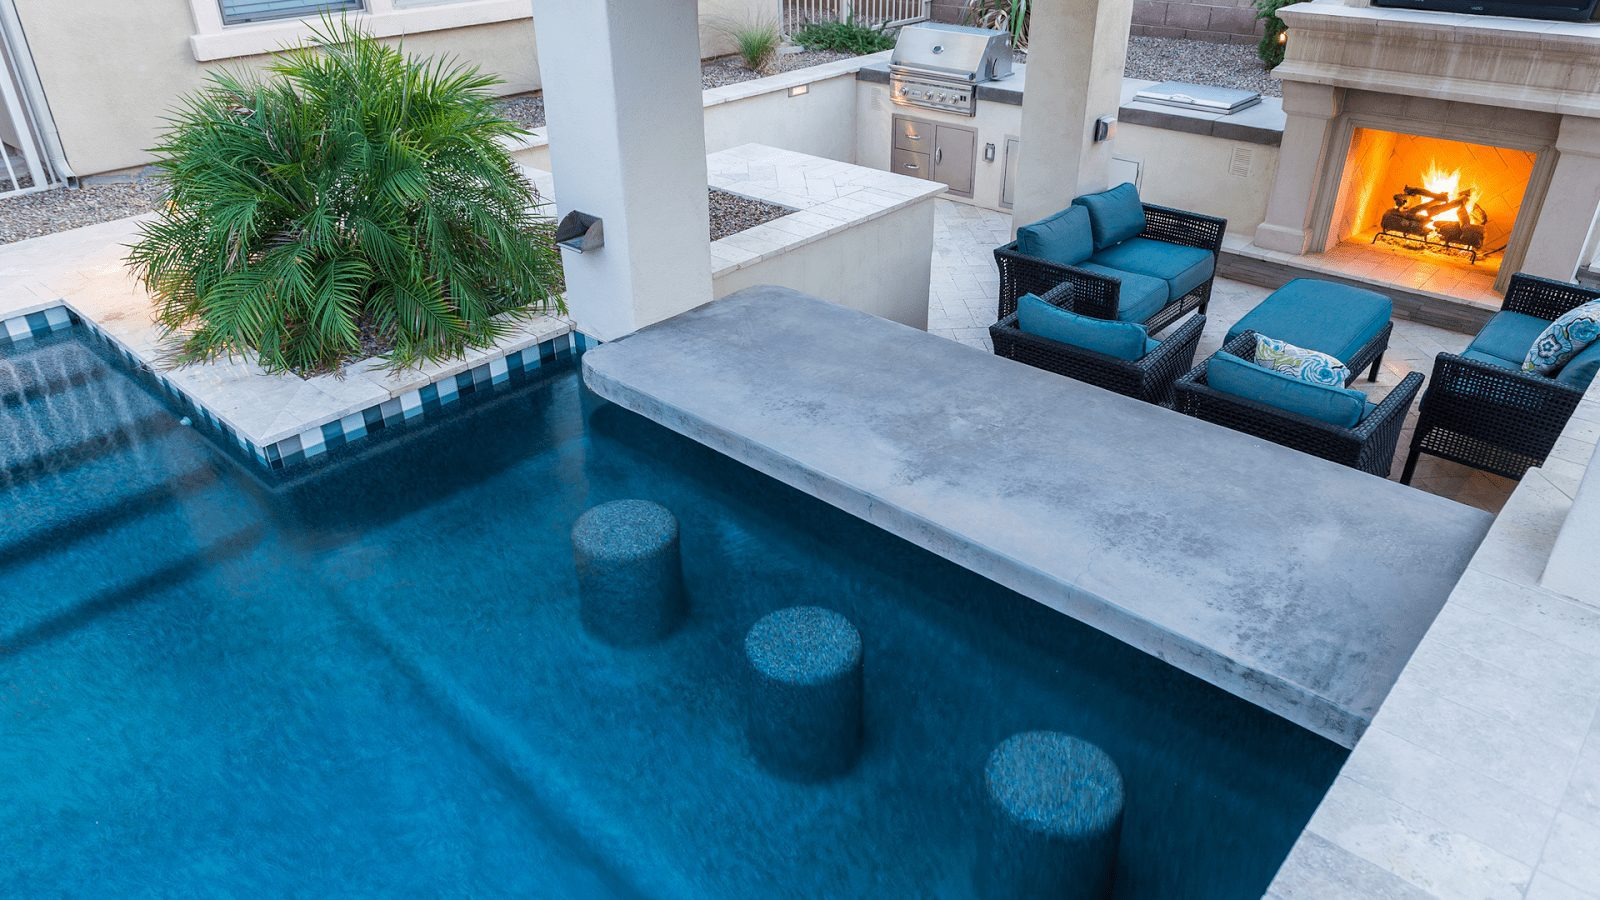 10 Questions About Your New Pool